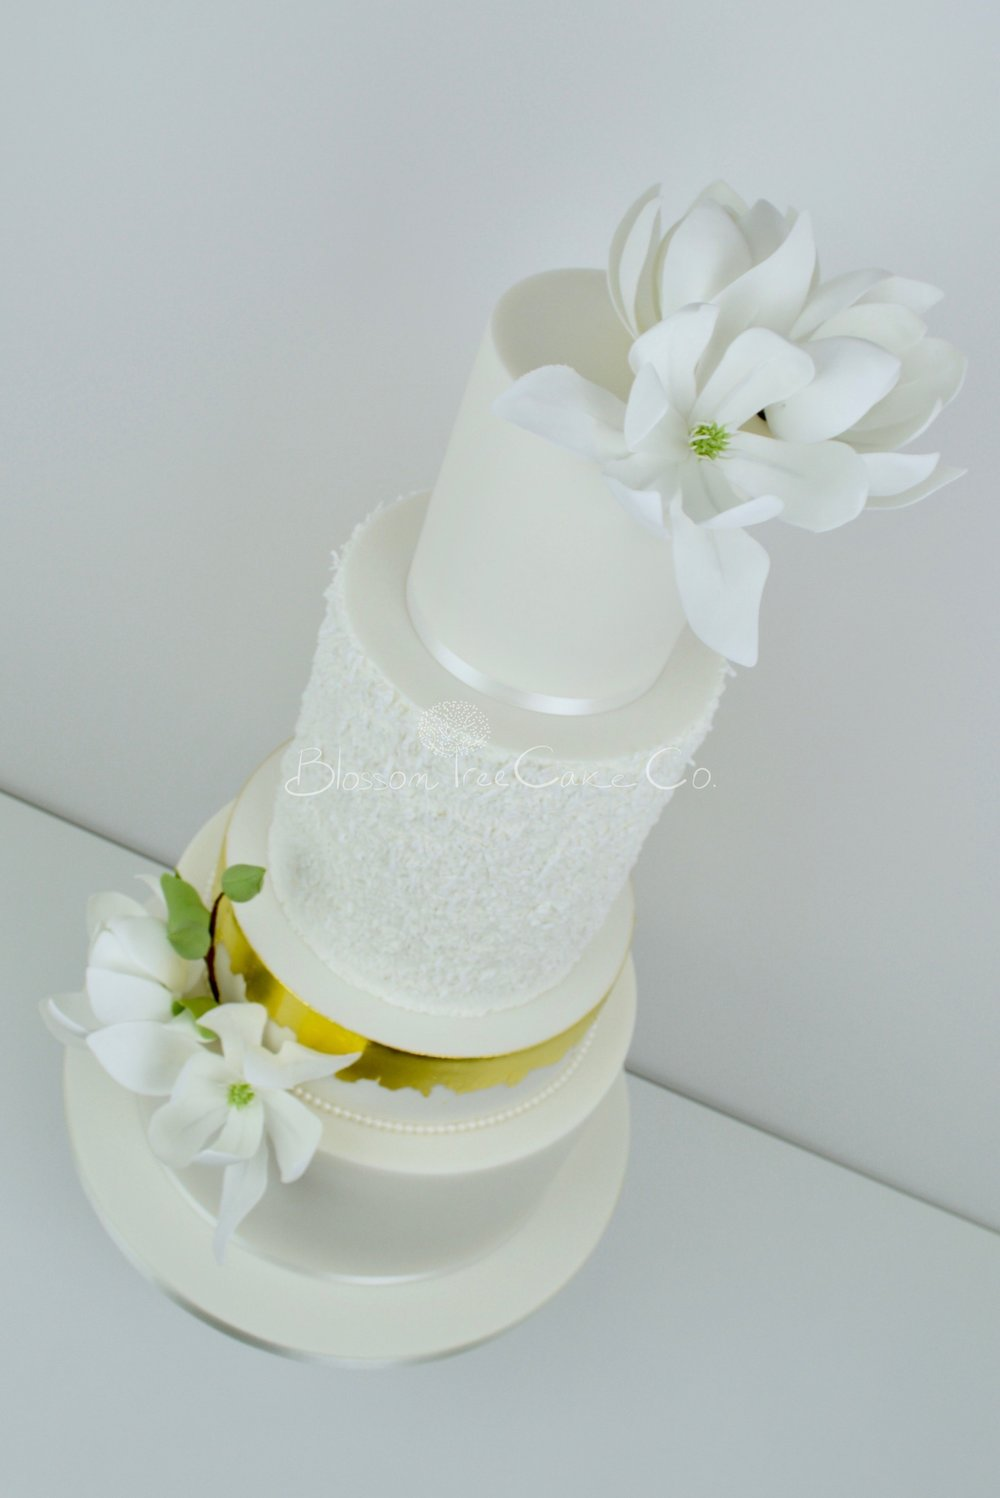 White Magnolias wedding cake by Blossom Tree Cake Company Harrogate North Yorkshire